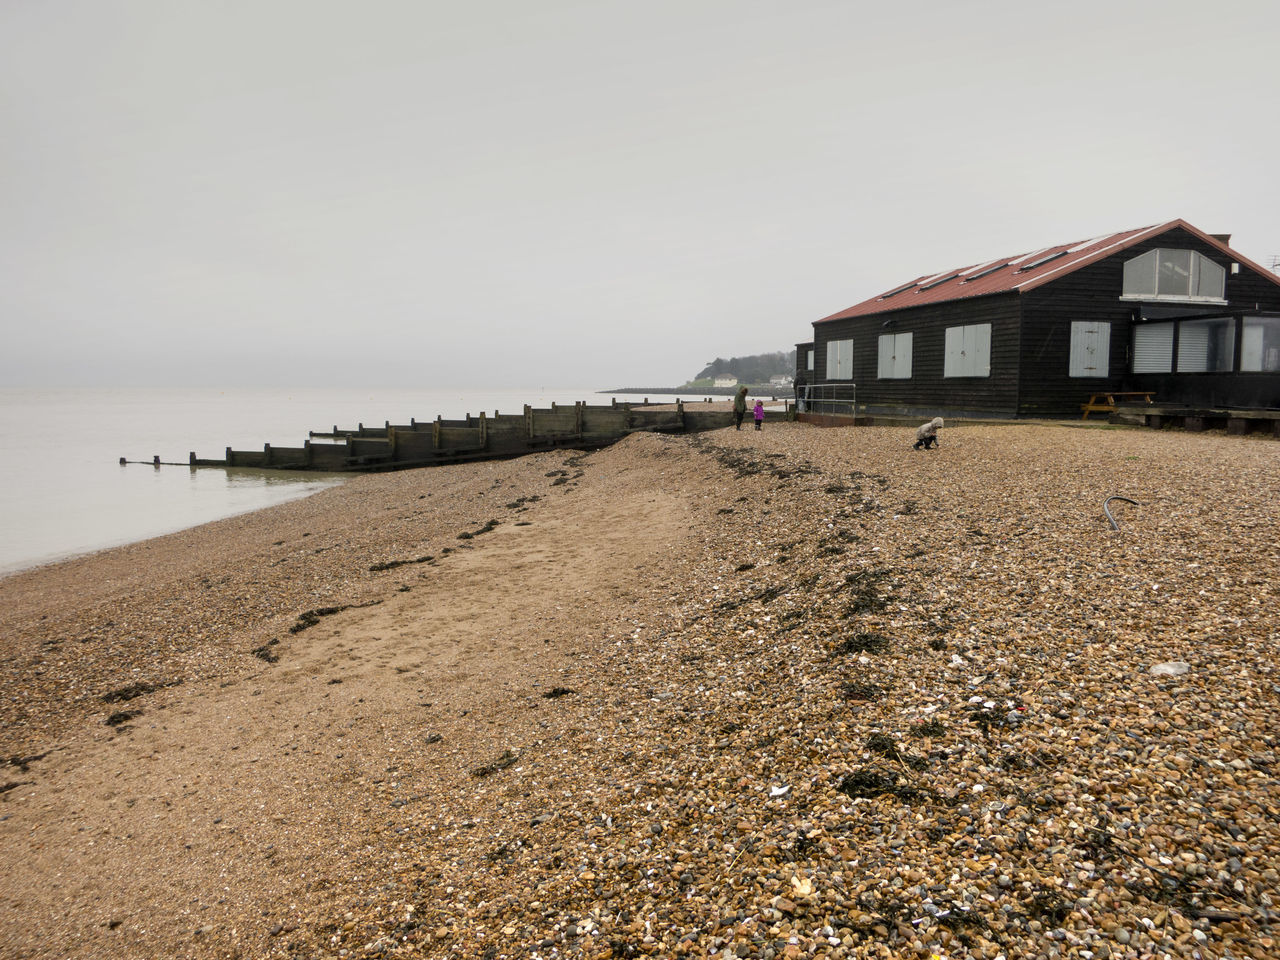 Beach Beautiful Harbour Jetty Ocean Overcast Pier Sand Sea Seascape Seaside Shore Vacations Water Whitstable Landscapes With WhiteWall